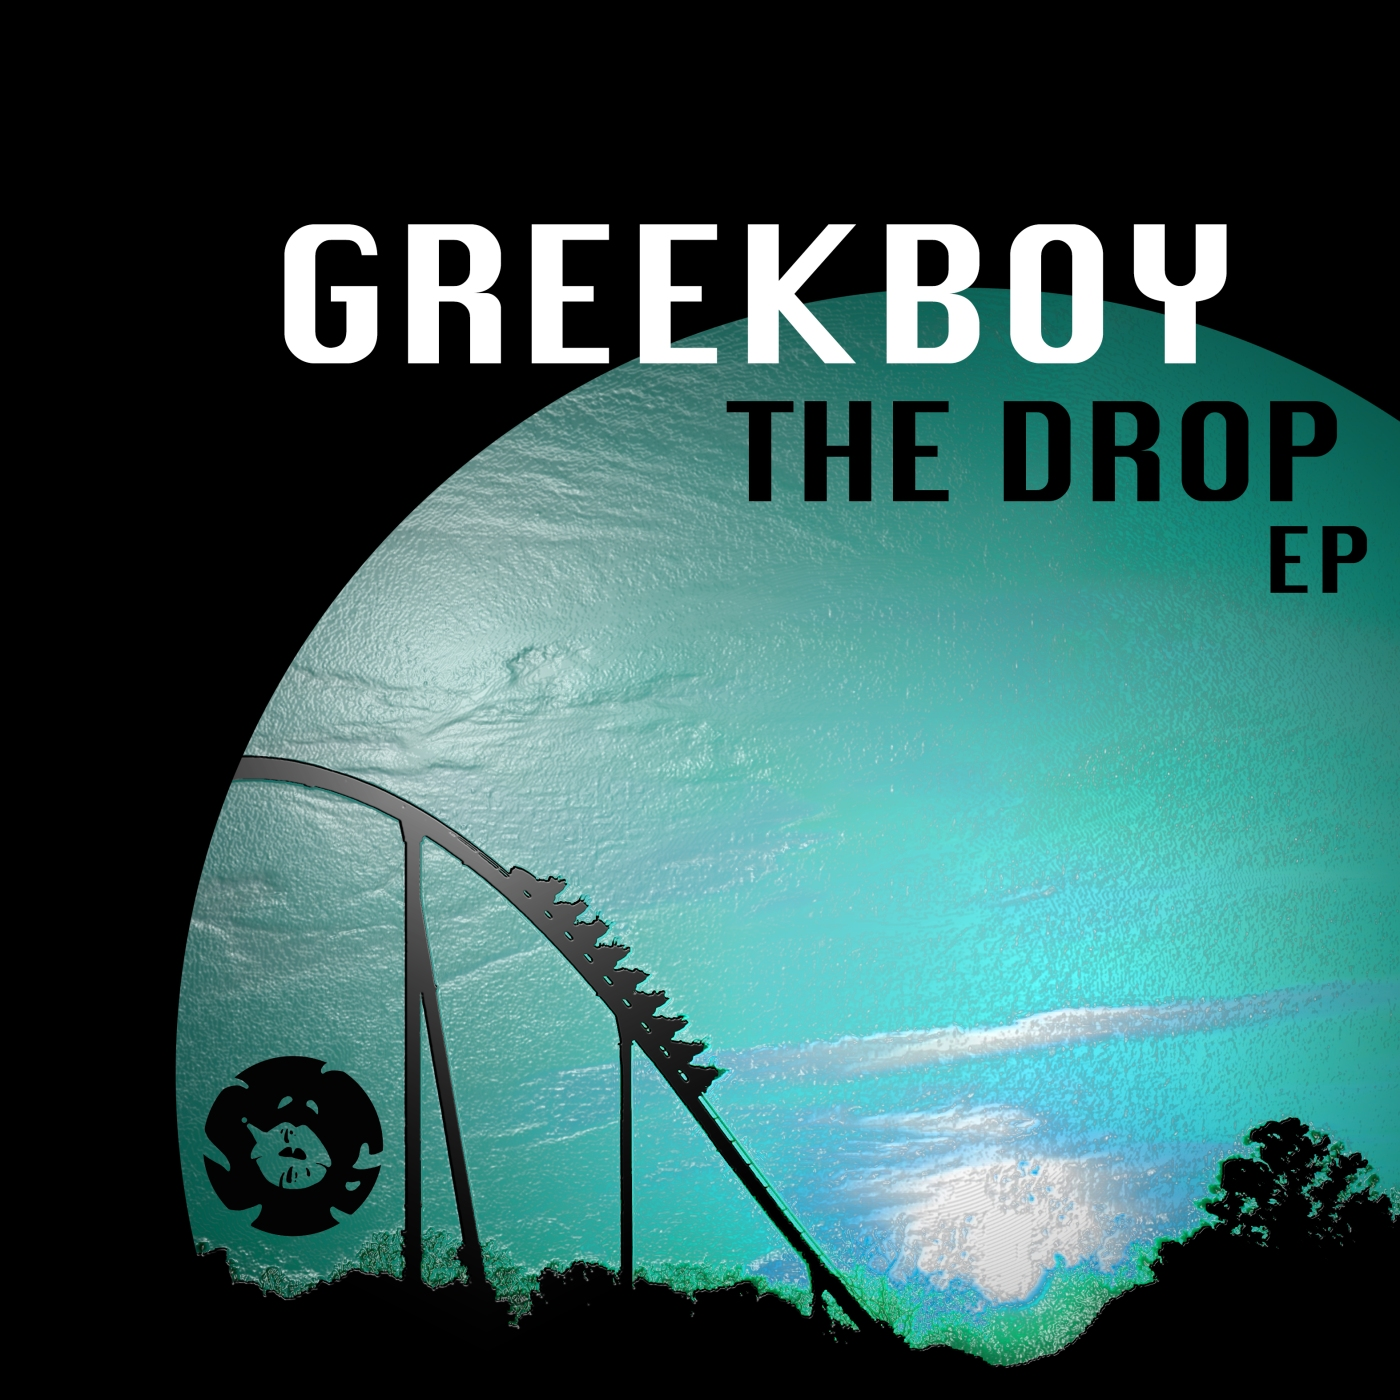 Greekboy - The Drop EP Artwork